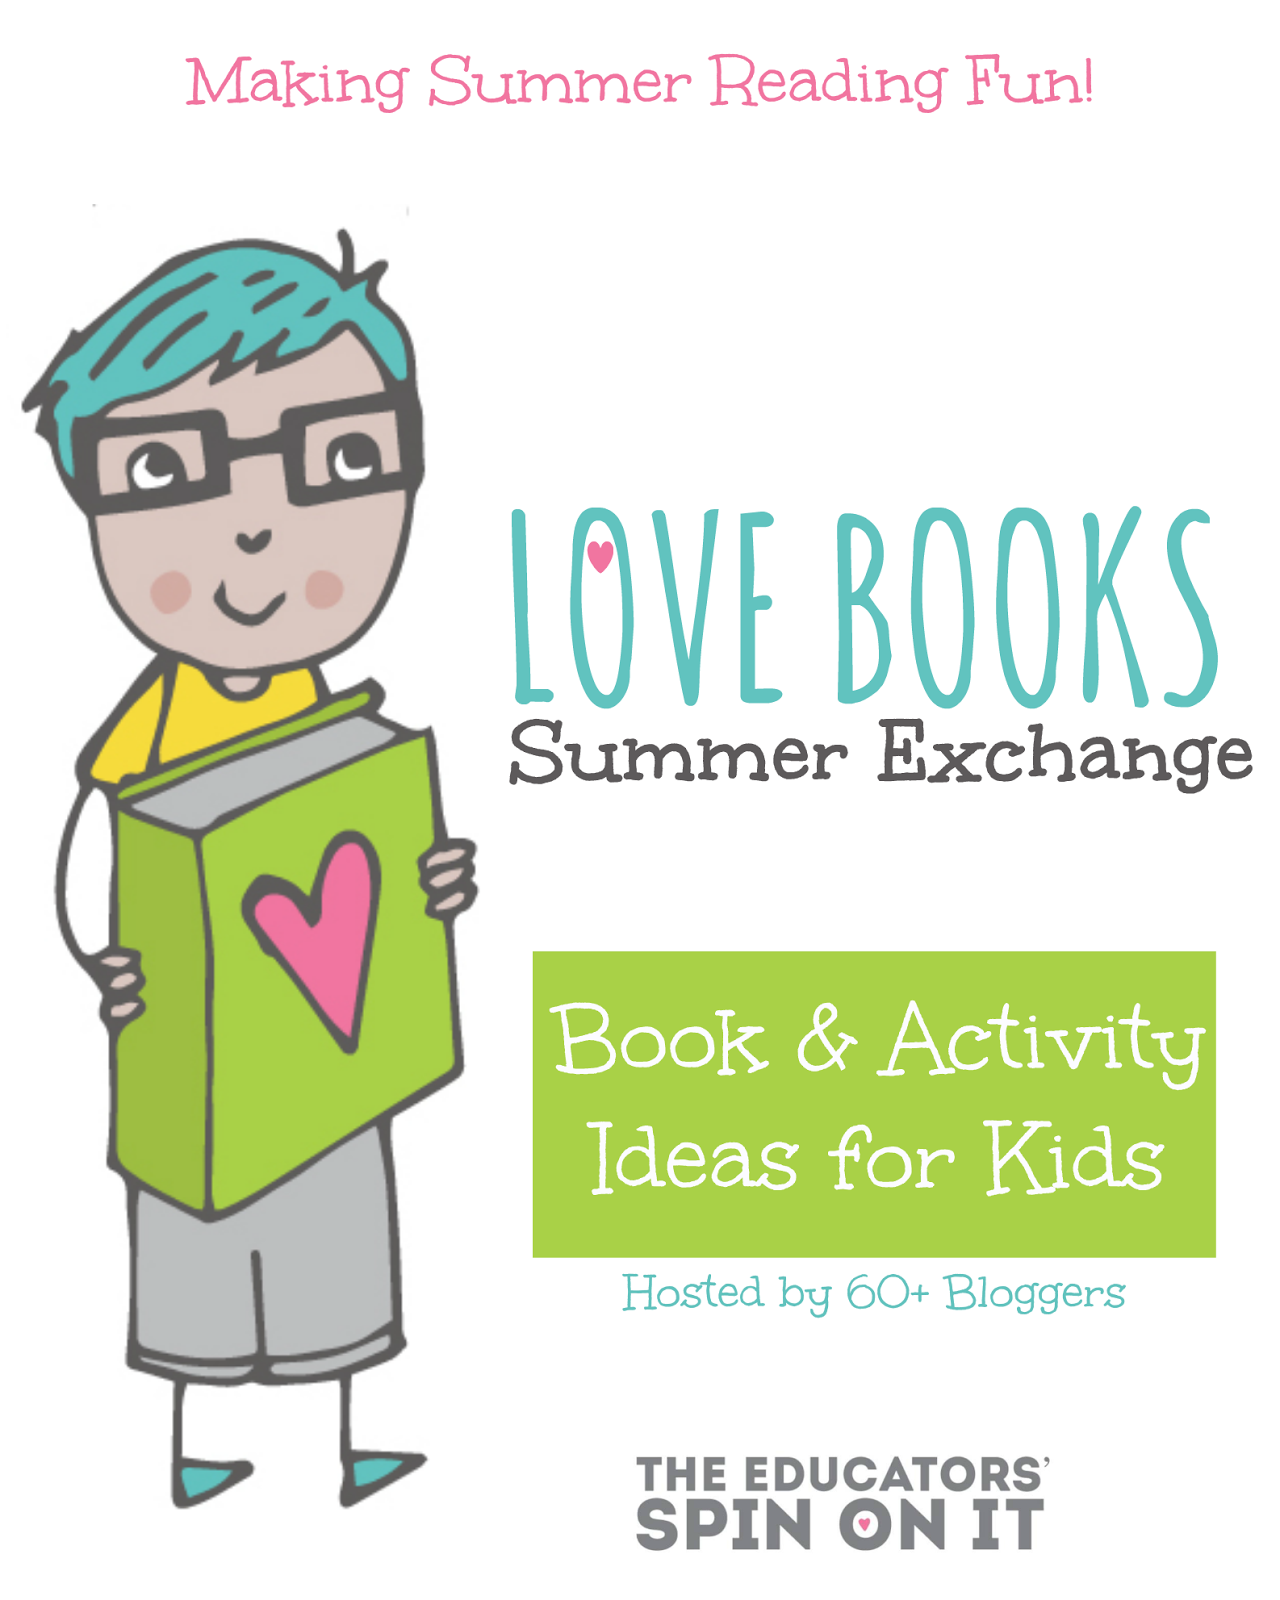 Book and Activities Ideas for Kids featured at The Educators' Spin On It Love Books Summer Exchange